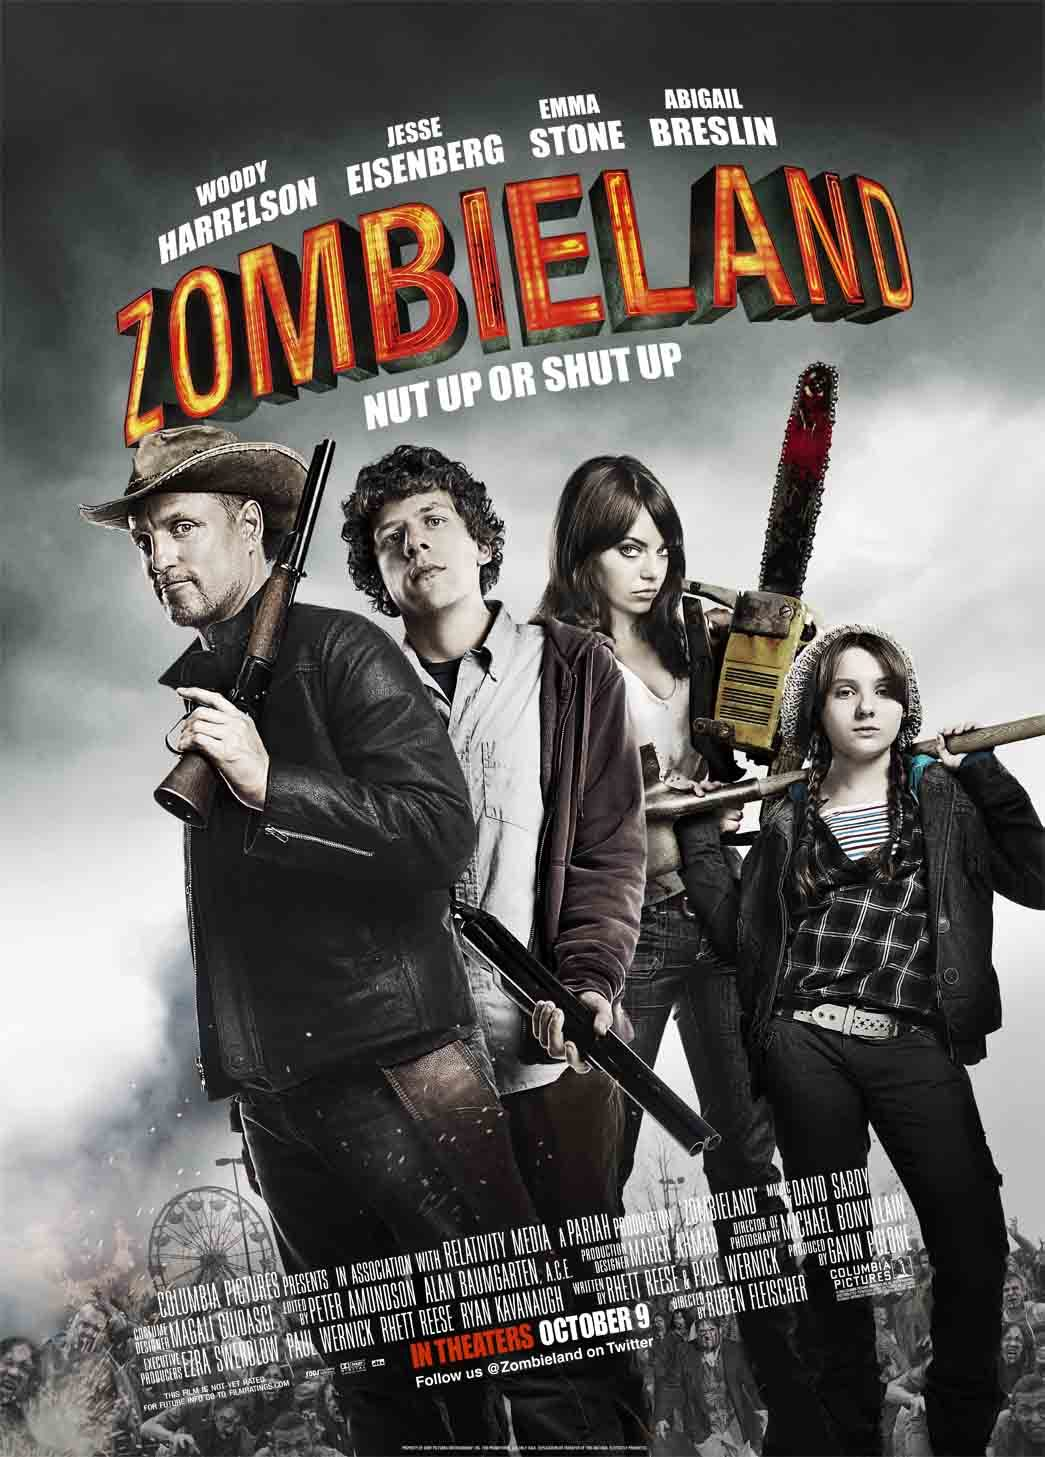 An image of the Zombieland Movie Cover